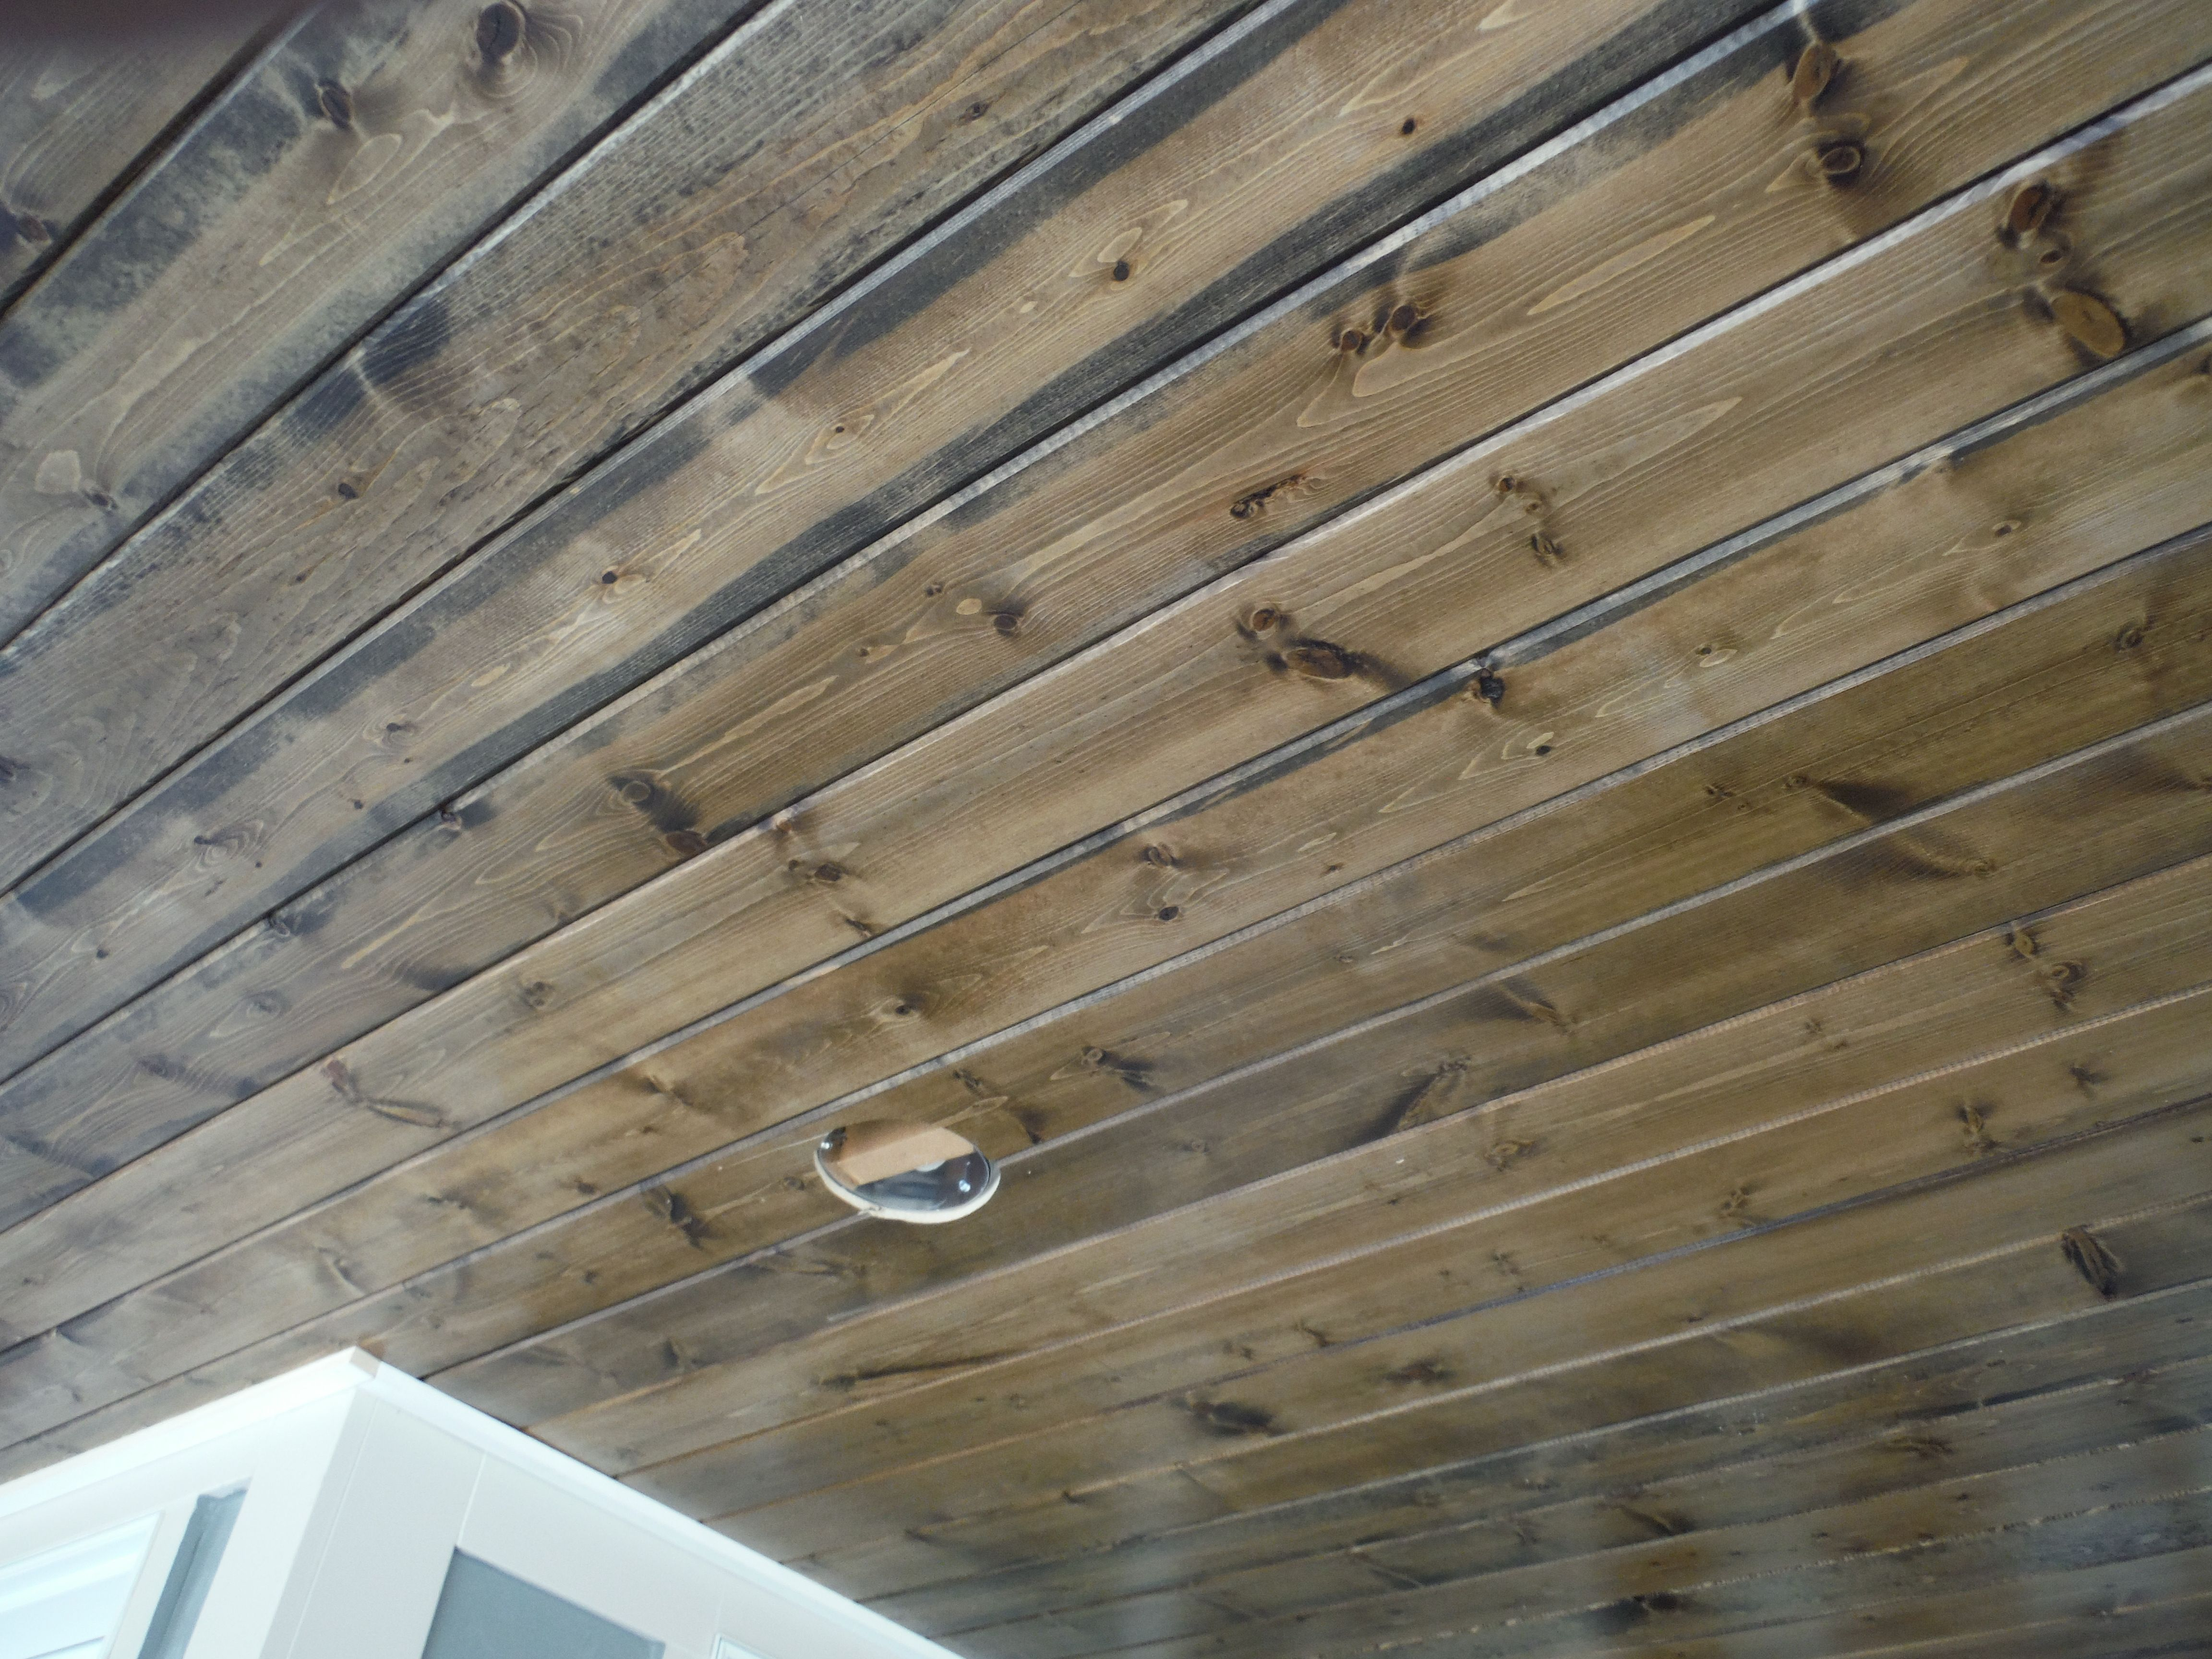 Plywood Plank Ceiling Pine Car Siding Porch Ceiling Stained Hardie Shingle Board